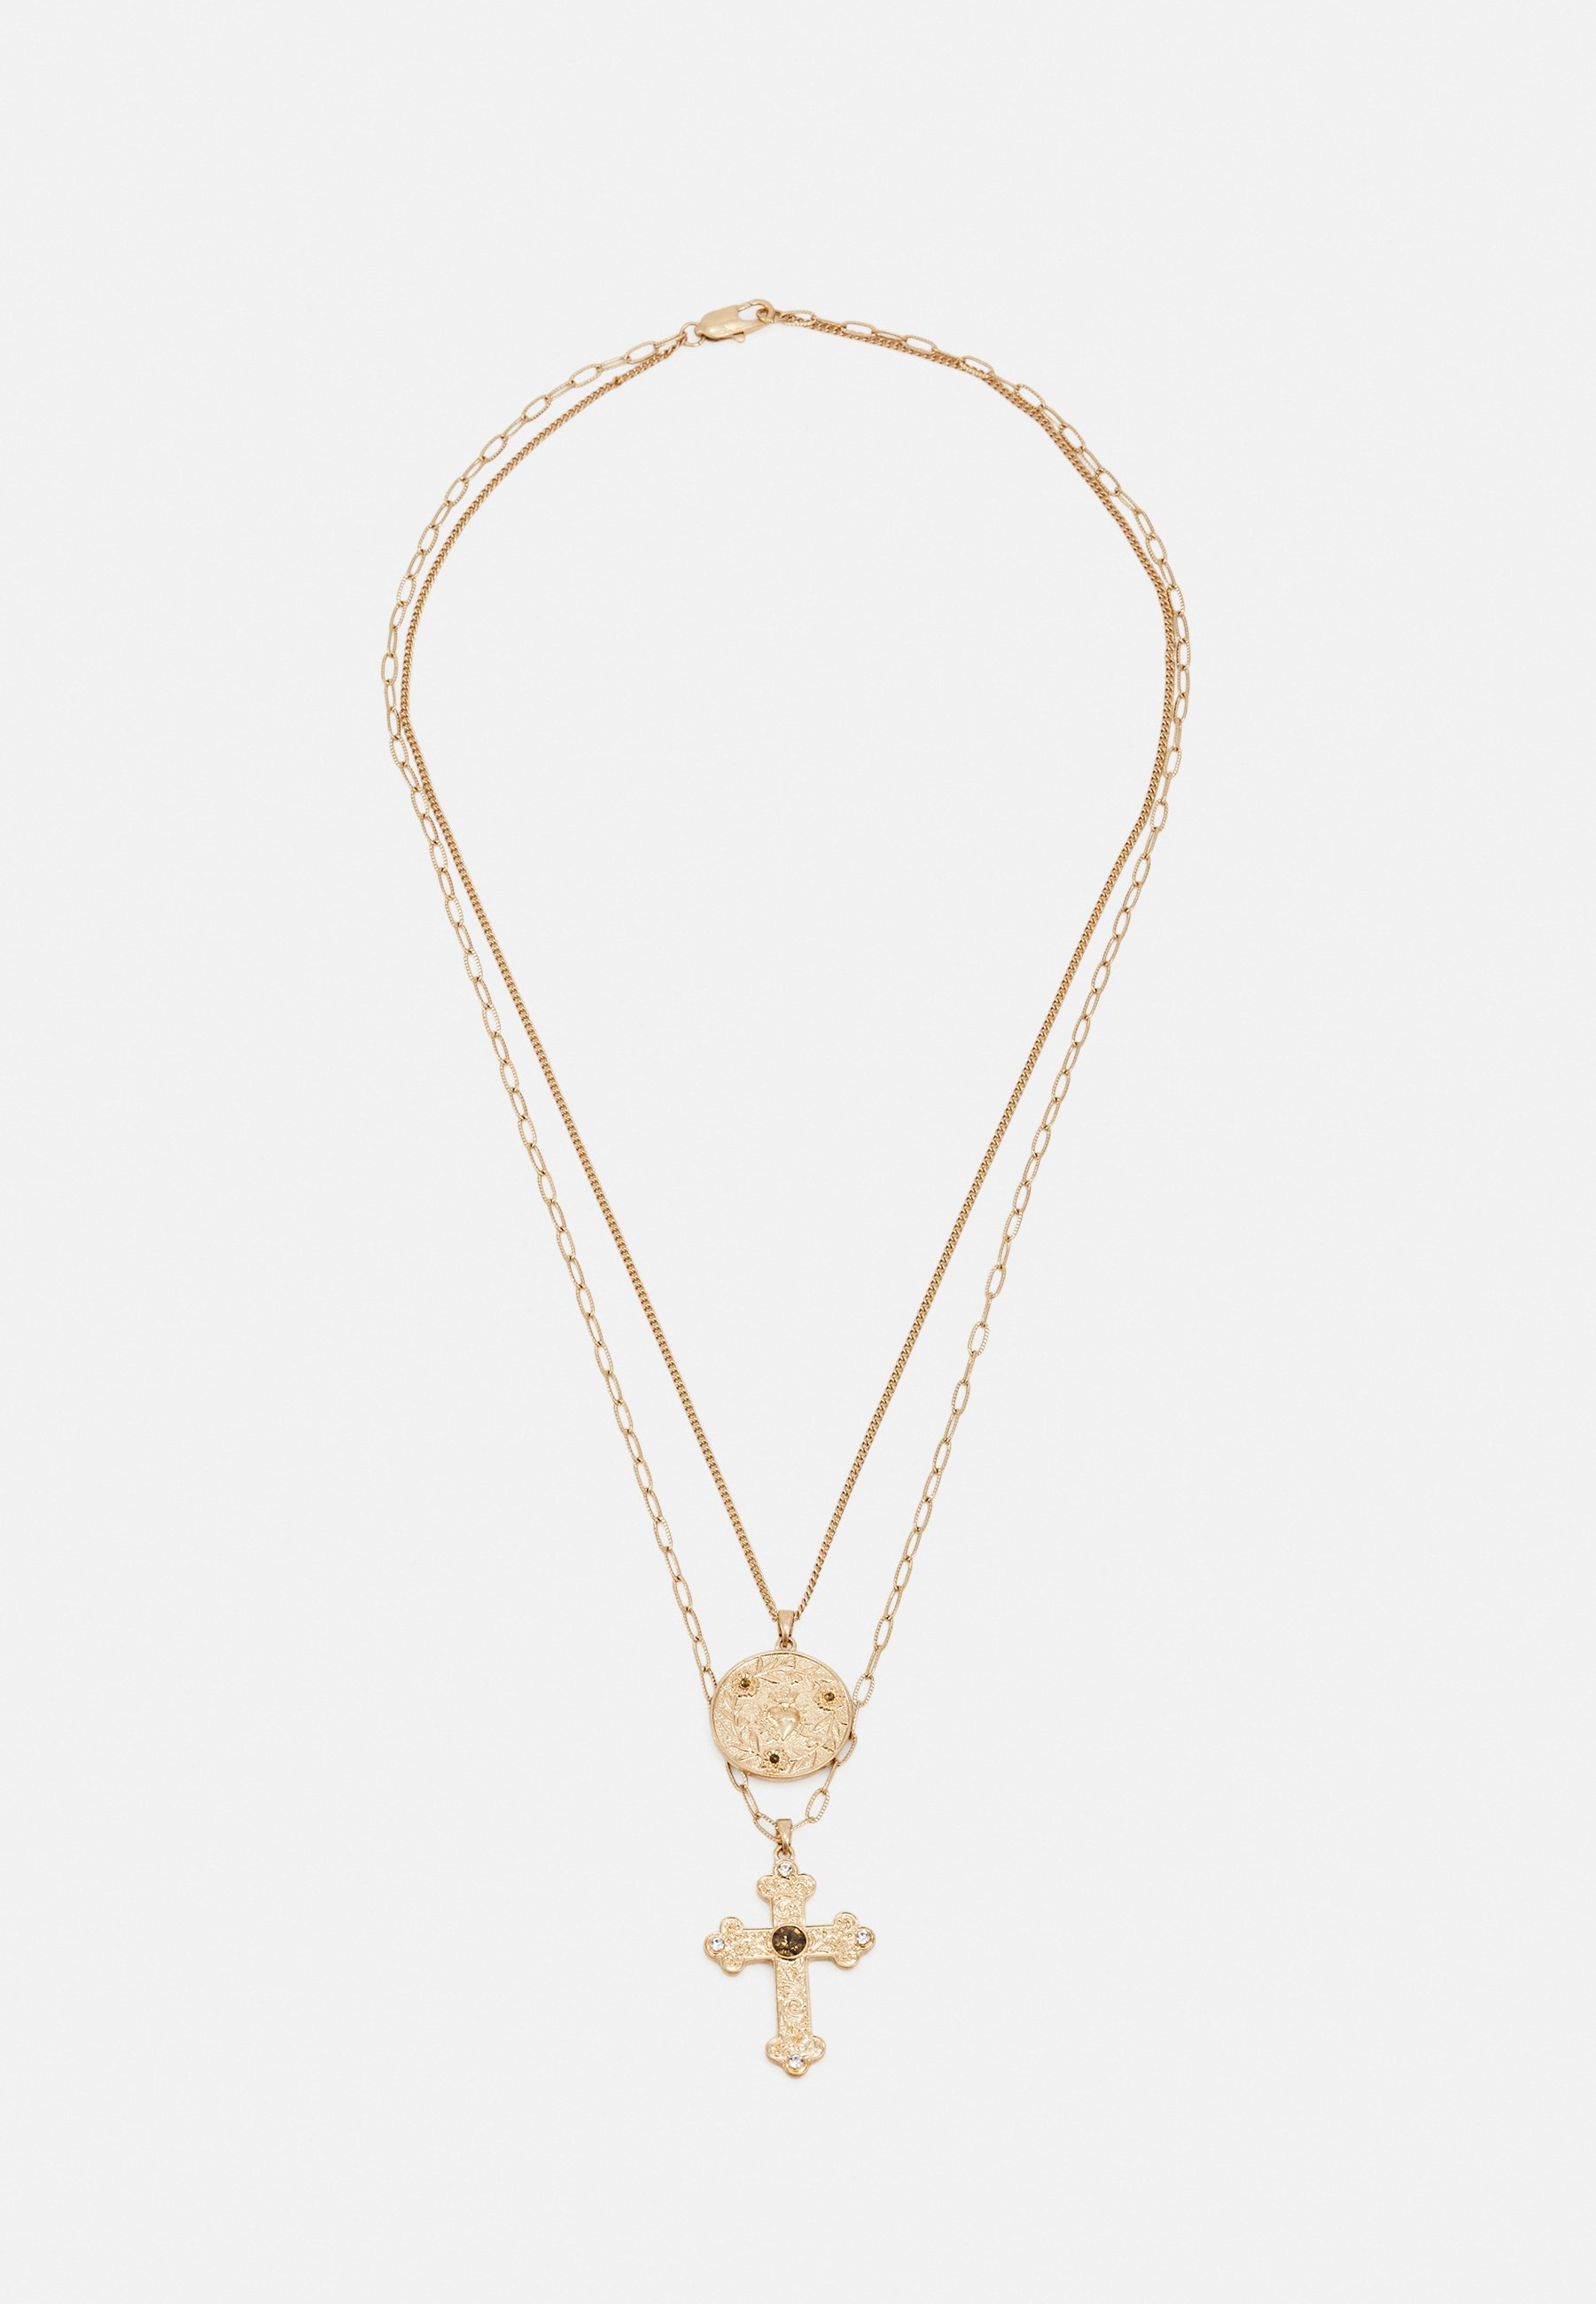 Homme CROSS AND COIN LAYERED NECKLACE UNISEX - Collier